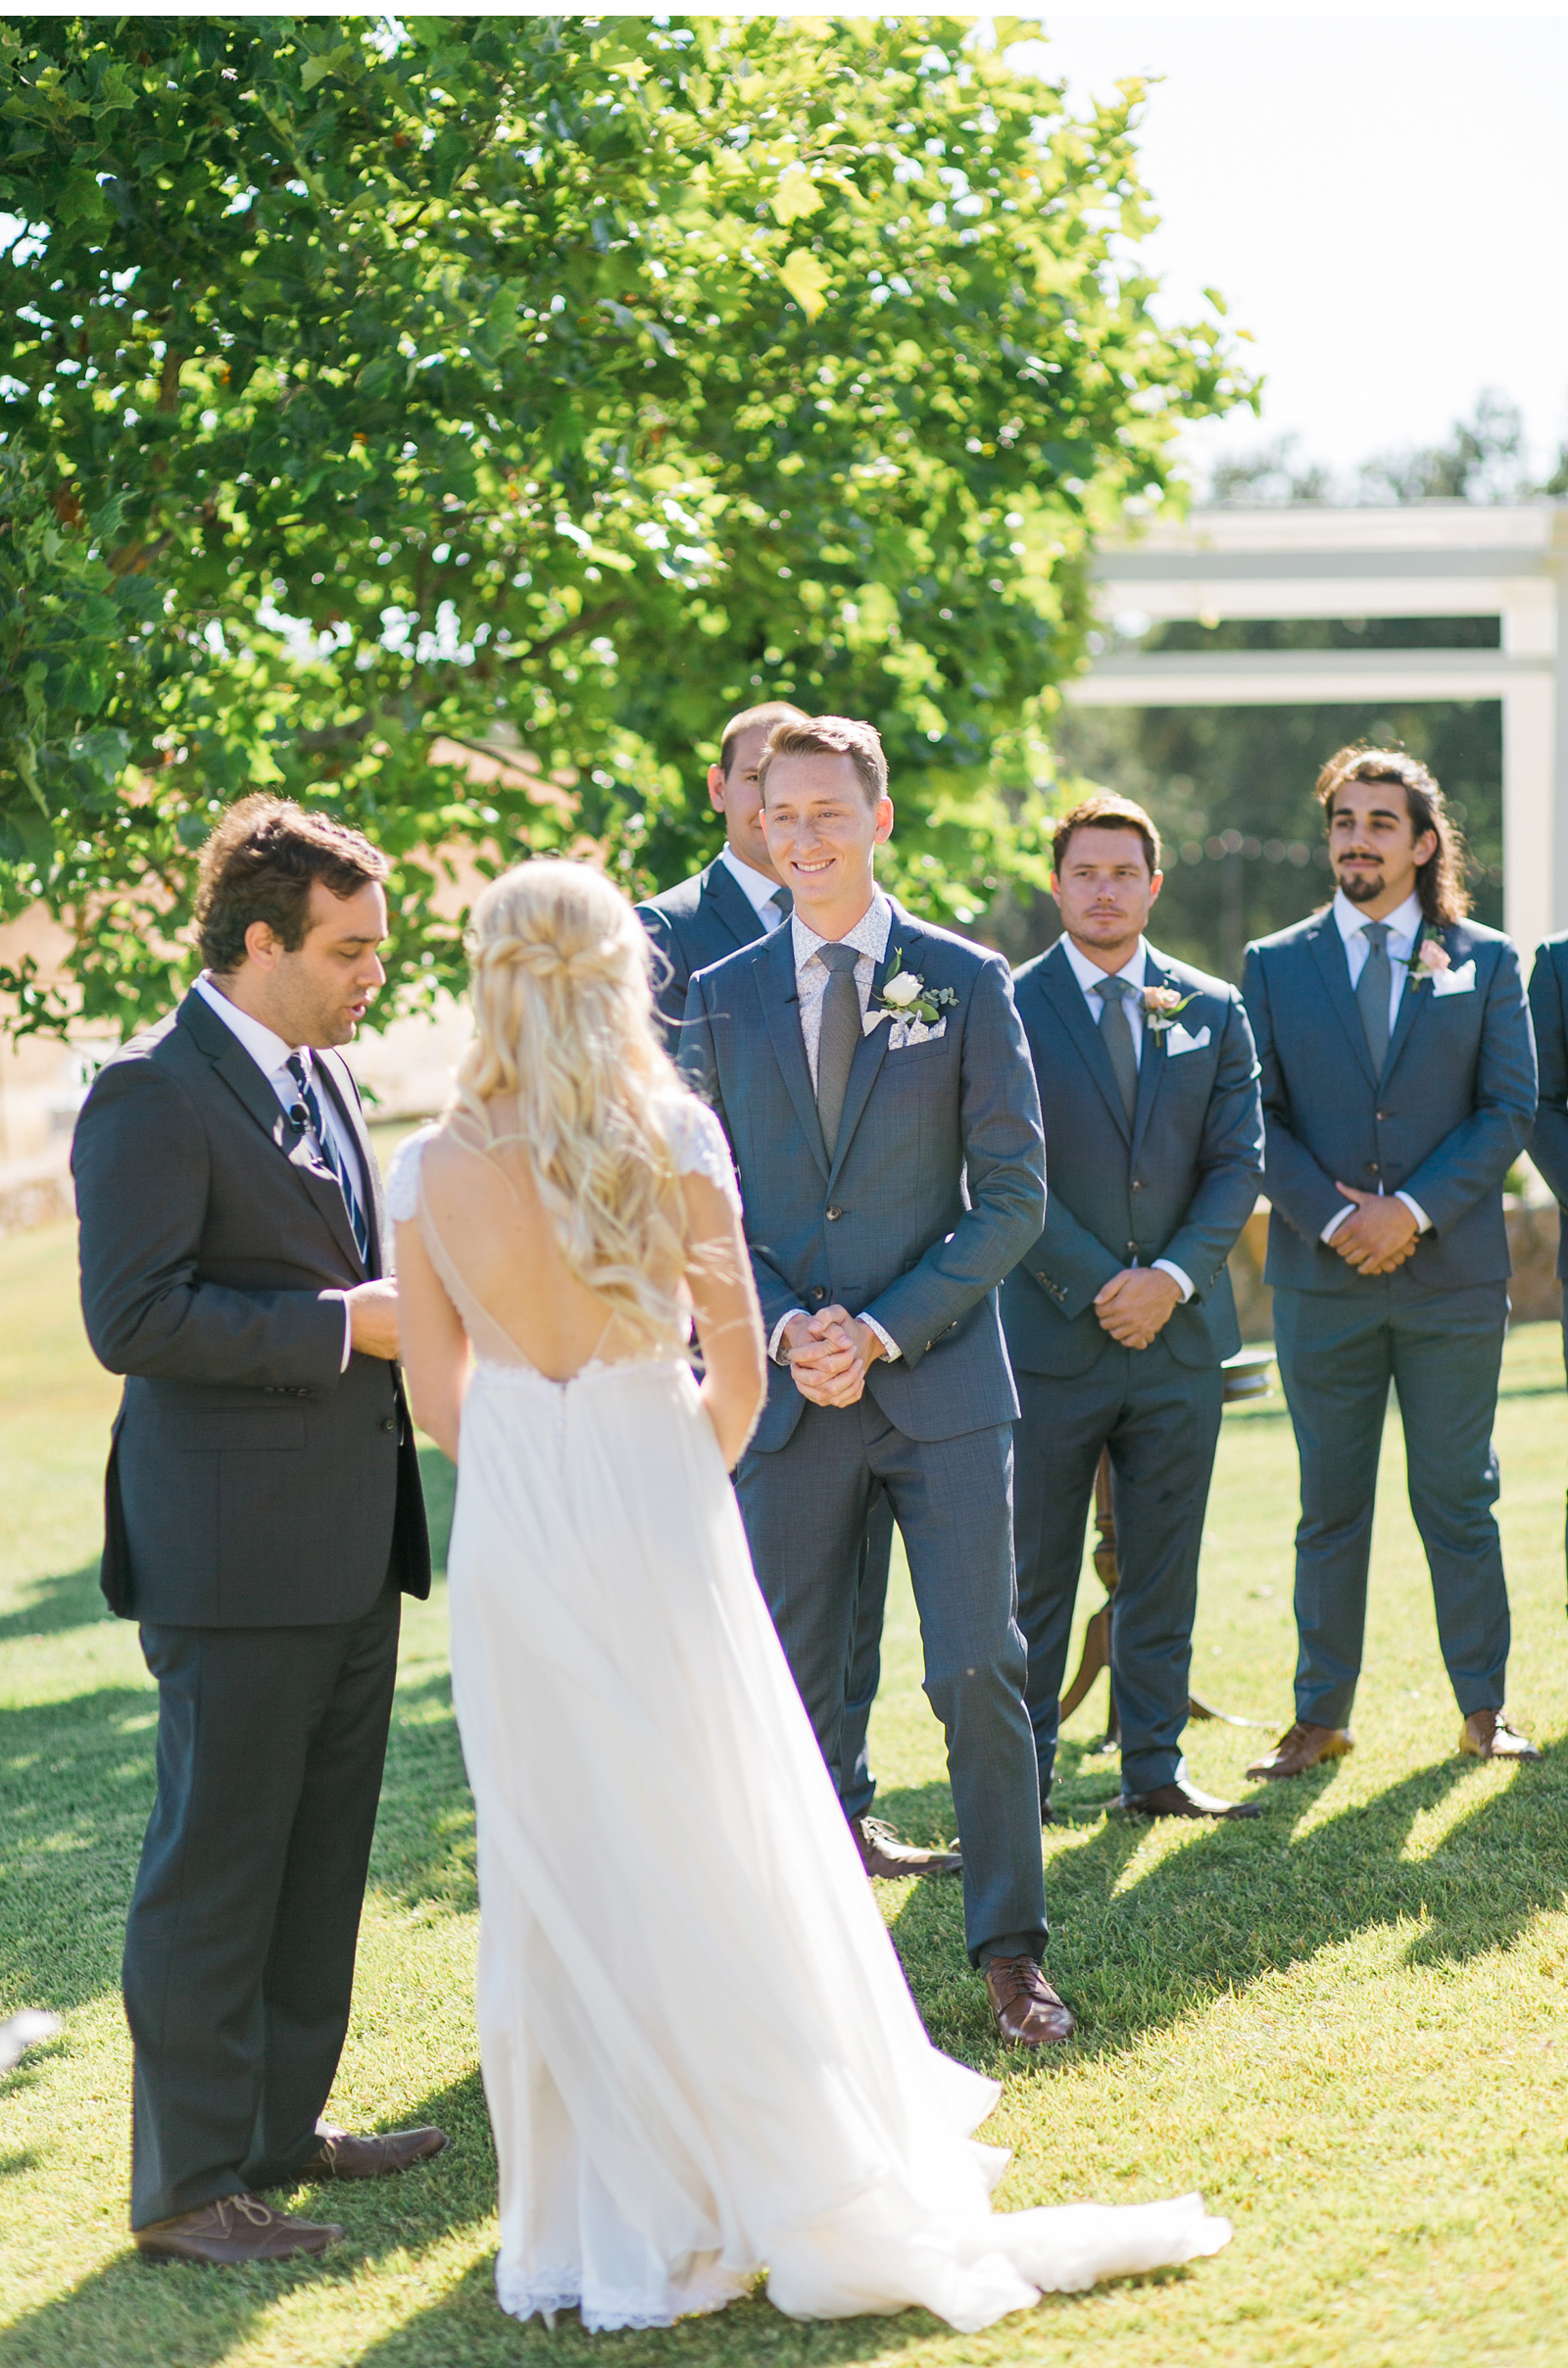 Paso-Robles-Style-Me-Pretty-The-Knot-Wedding-Natalie-Schutt-Photography's-Wedding_15.jpg